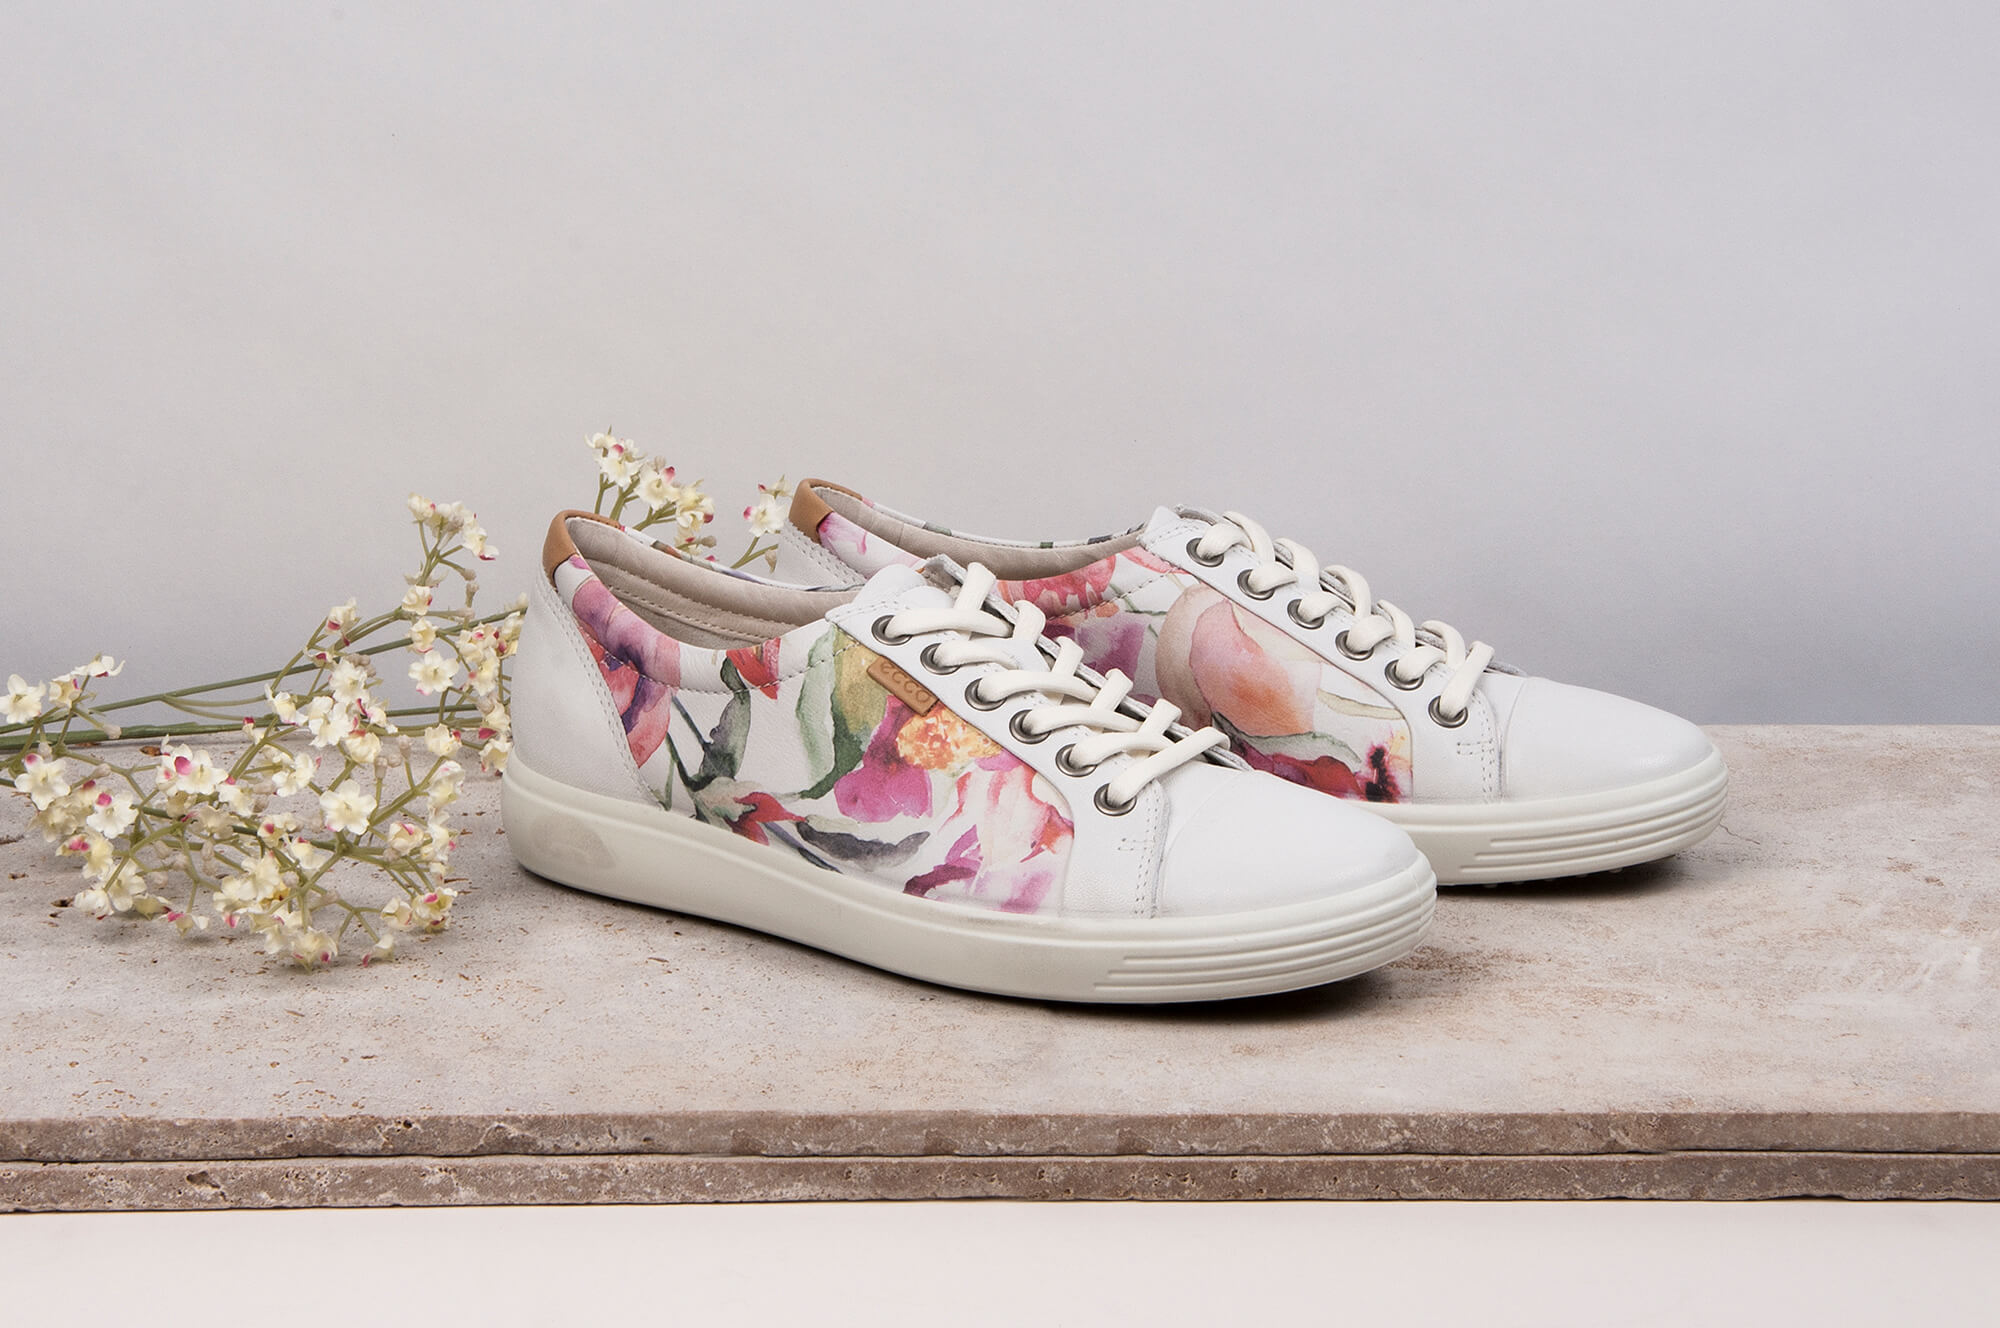 Buy white shoes with flowers off42 discounts white shoes with flowers mightylinksfo